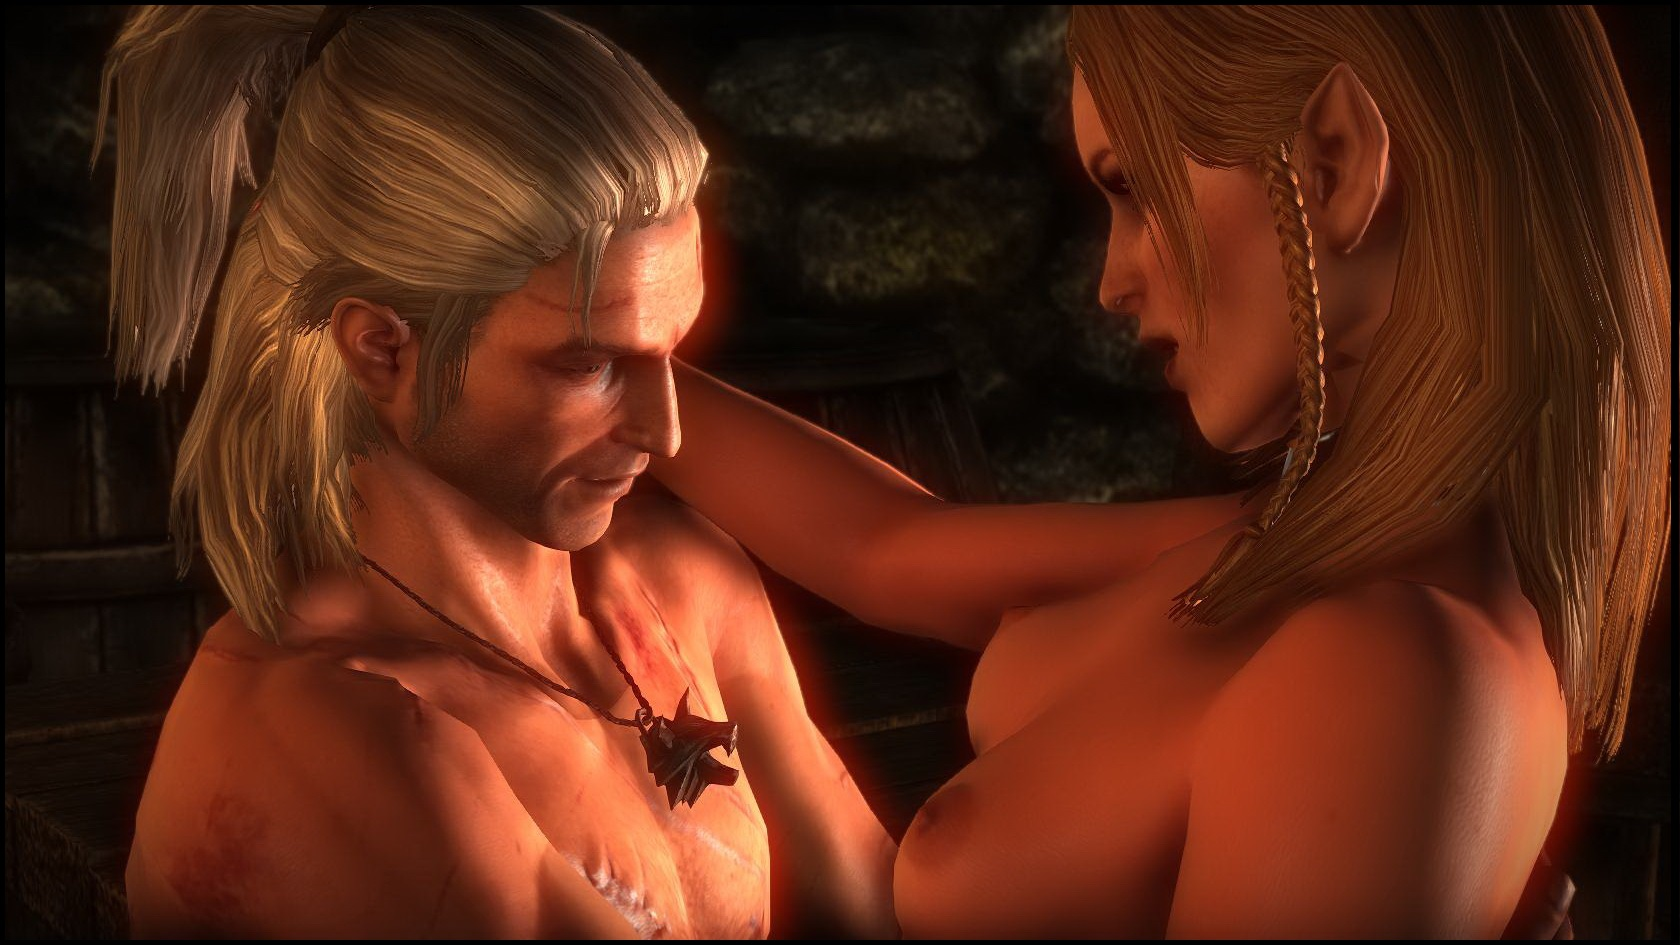 The witcher erotic cards smut home women